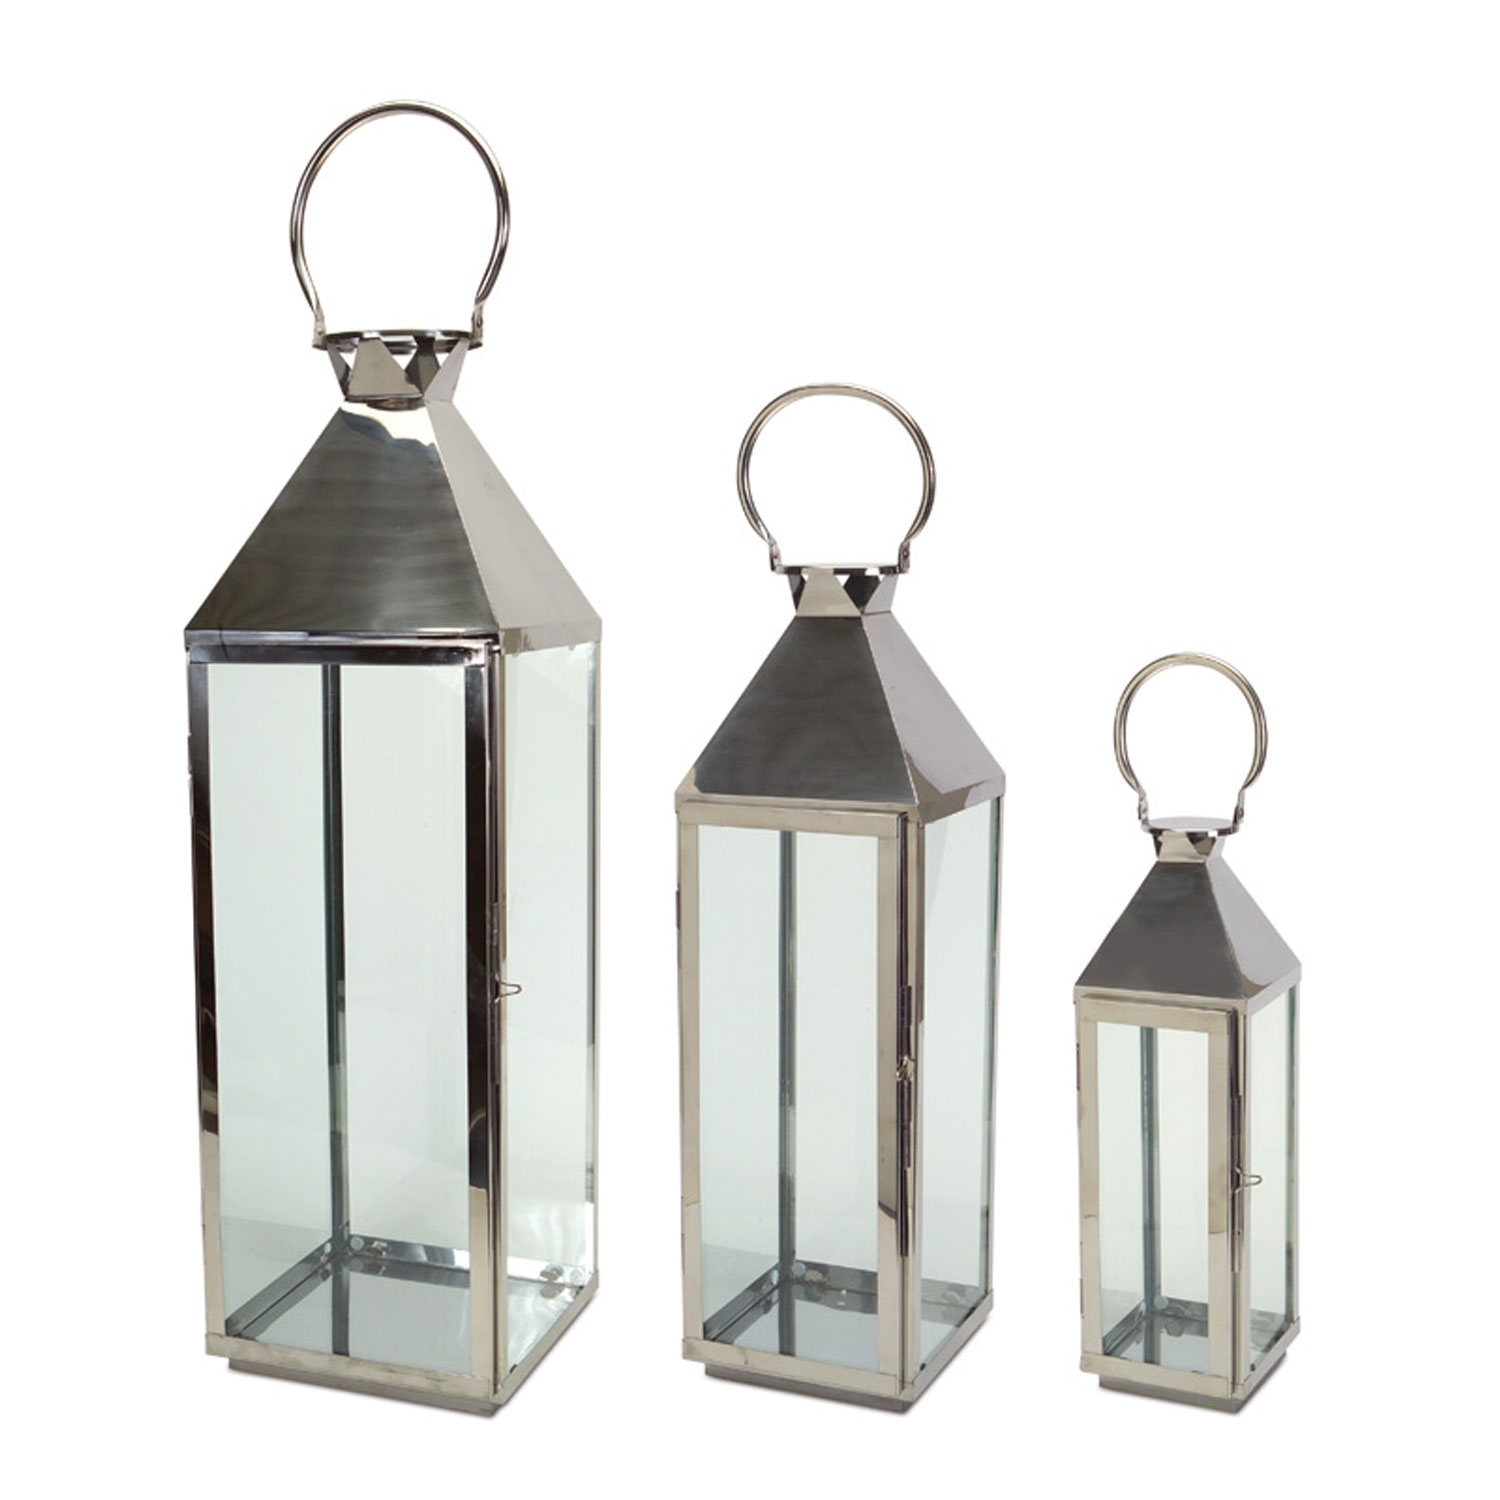 Candle Lanterns, Outdoor Hanging Lanterns, Decorative On Sale Pertaining To Outdoor Hanging Candle Lanterns (#4 of 15)